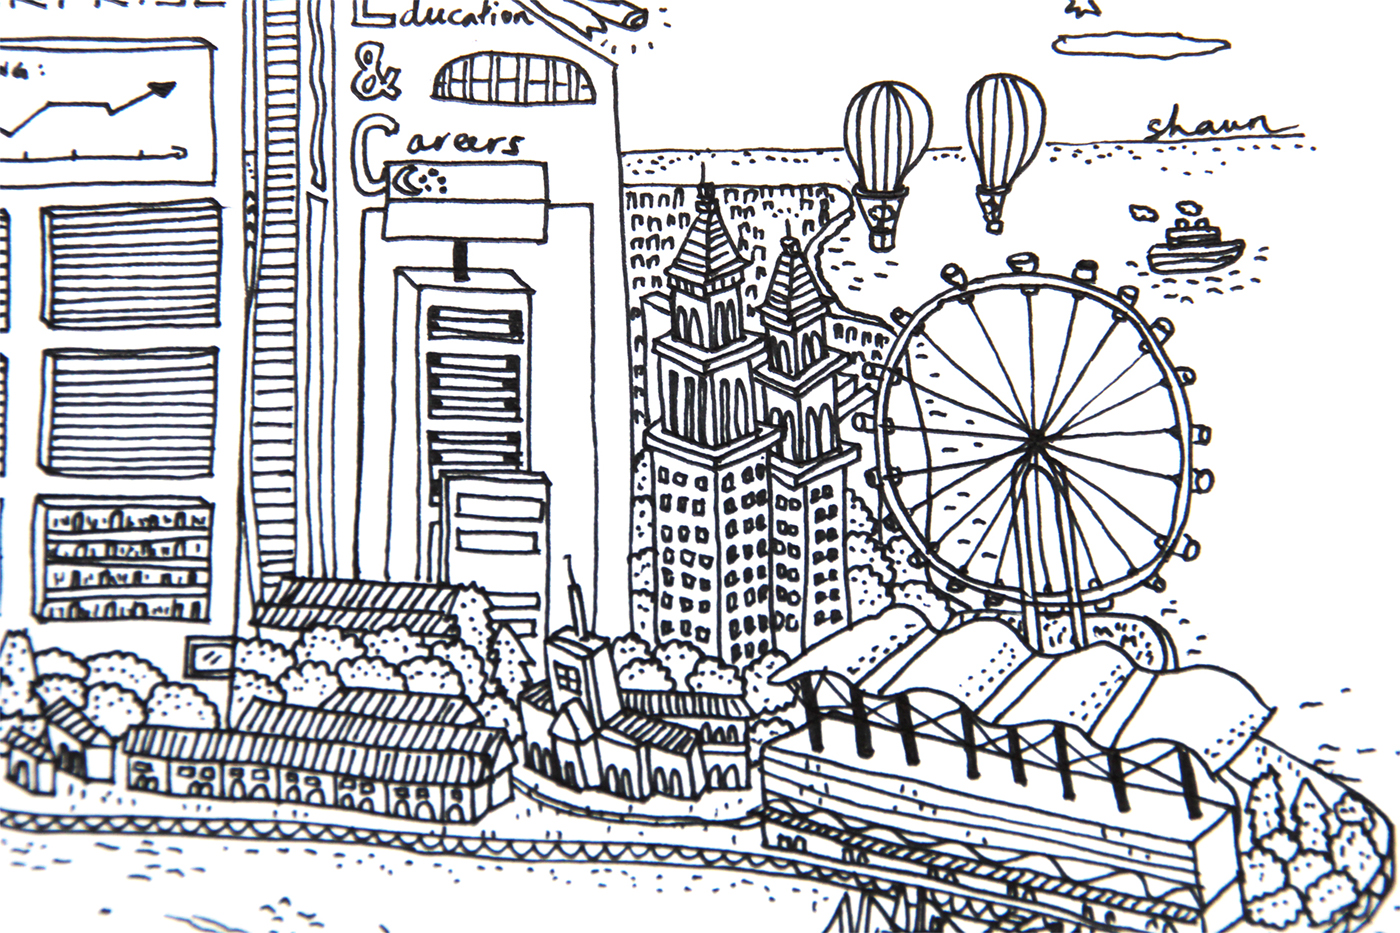 Colouring book for adults singapore -  Careers And Recreation Leisure Into A Fun Illustration That Showed The Diversity And Competency Of Mpa In This Sunny Little Island Singapore